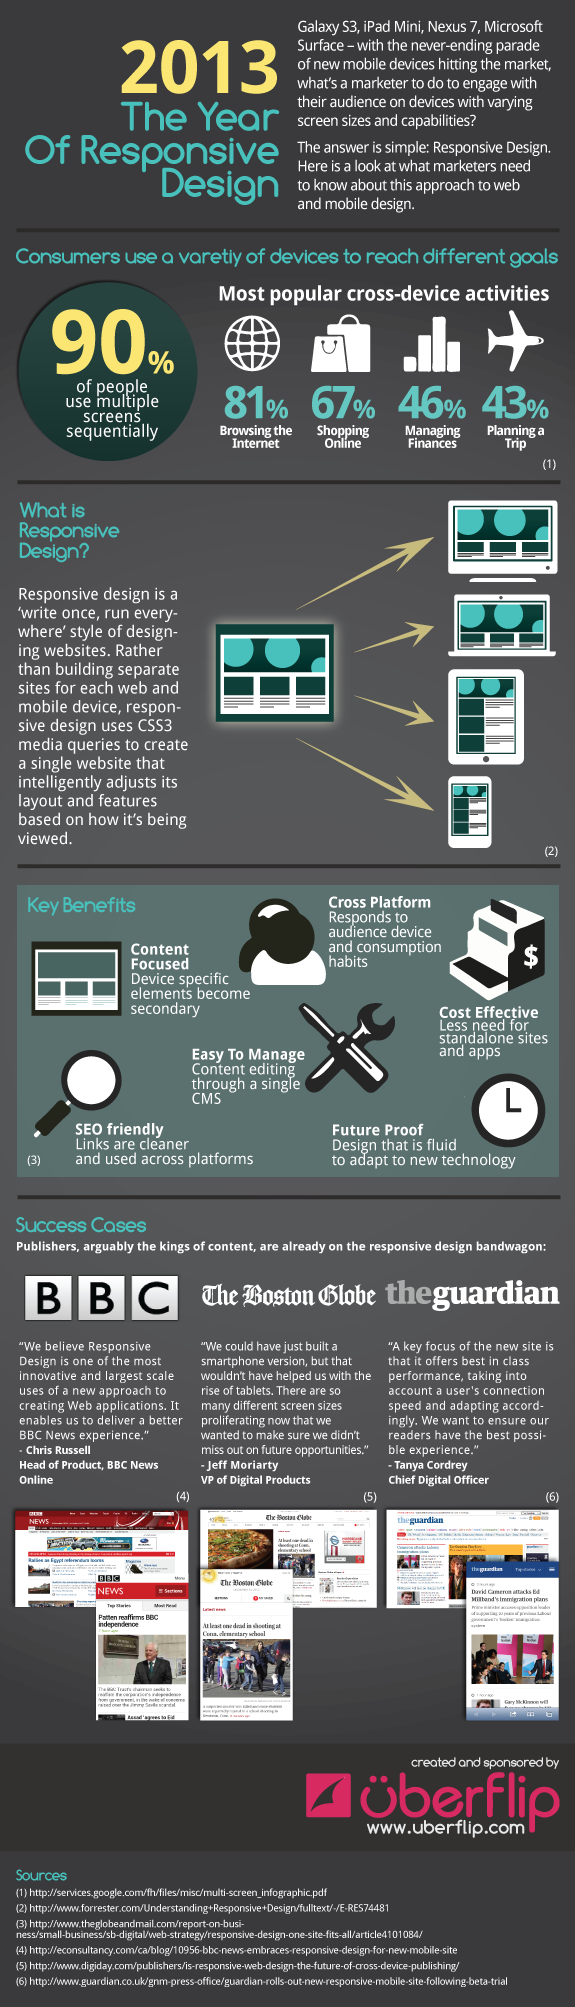 infographic-2013-the-year-of-responsive-web-design